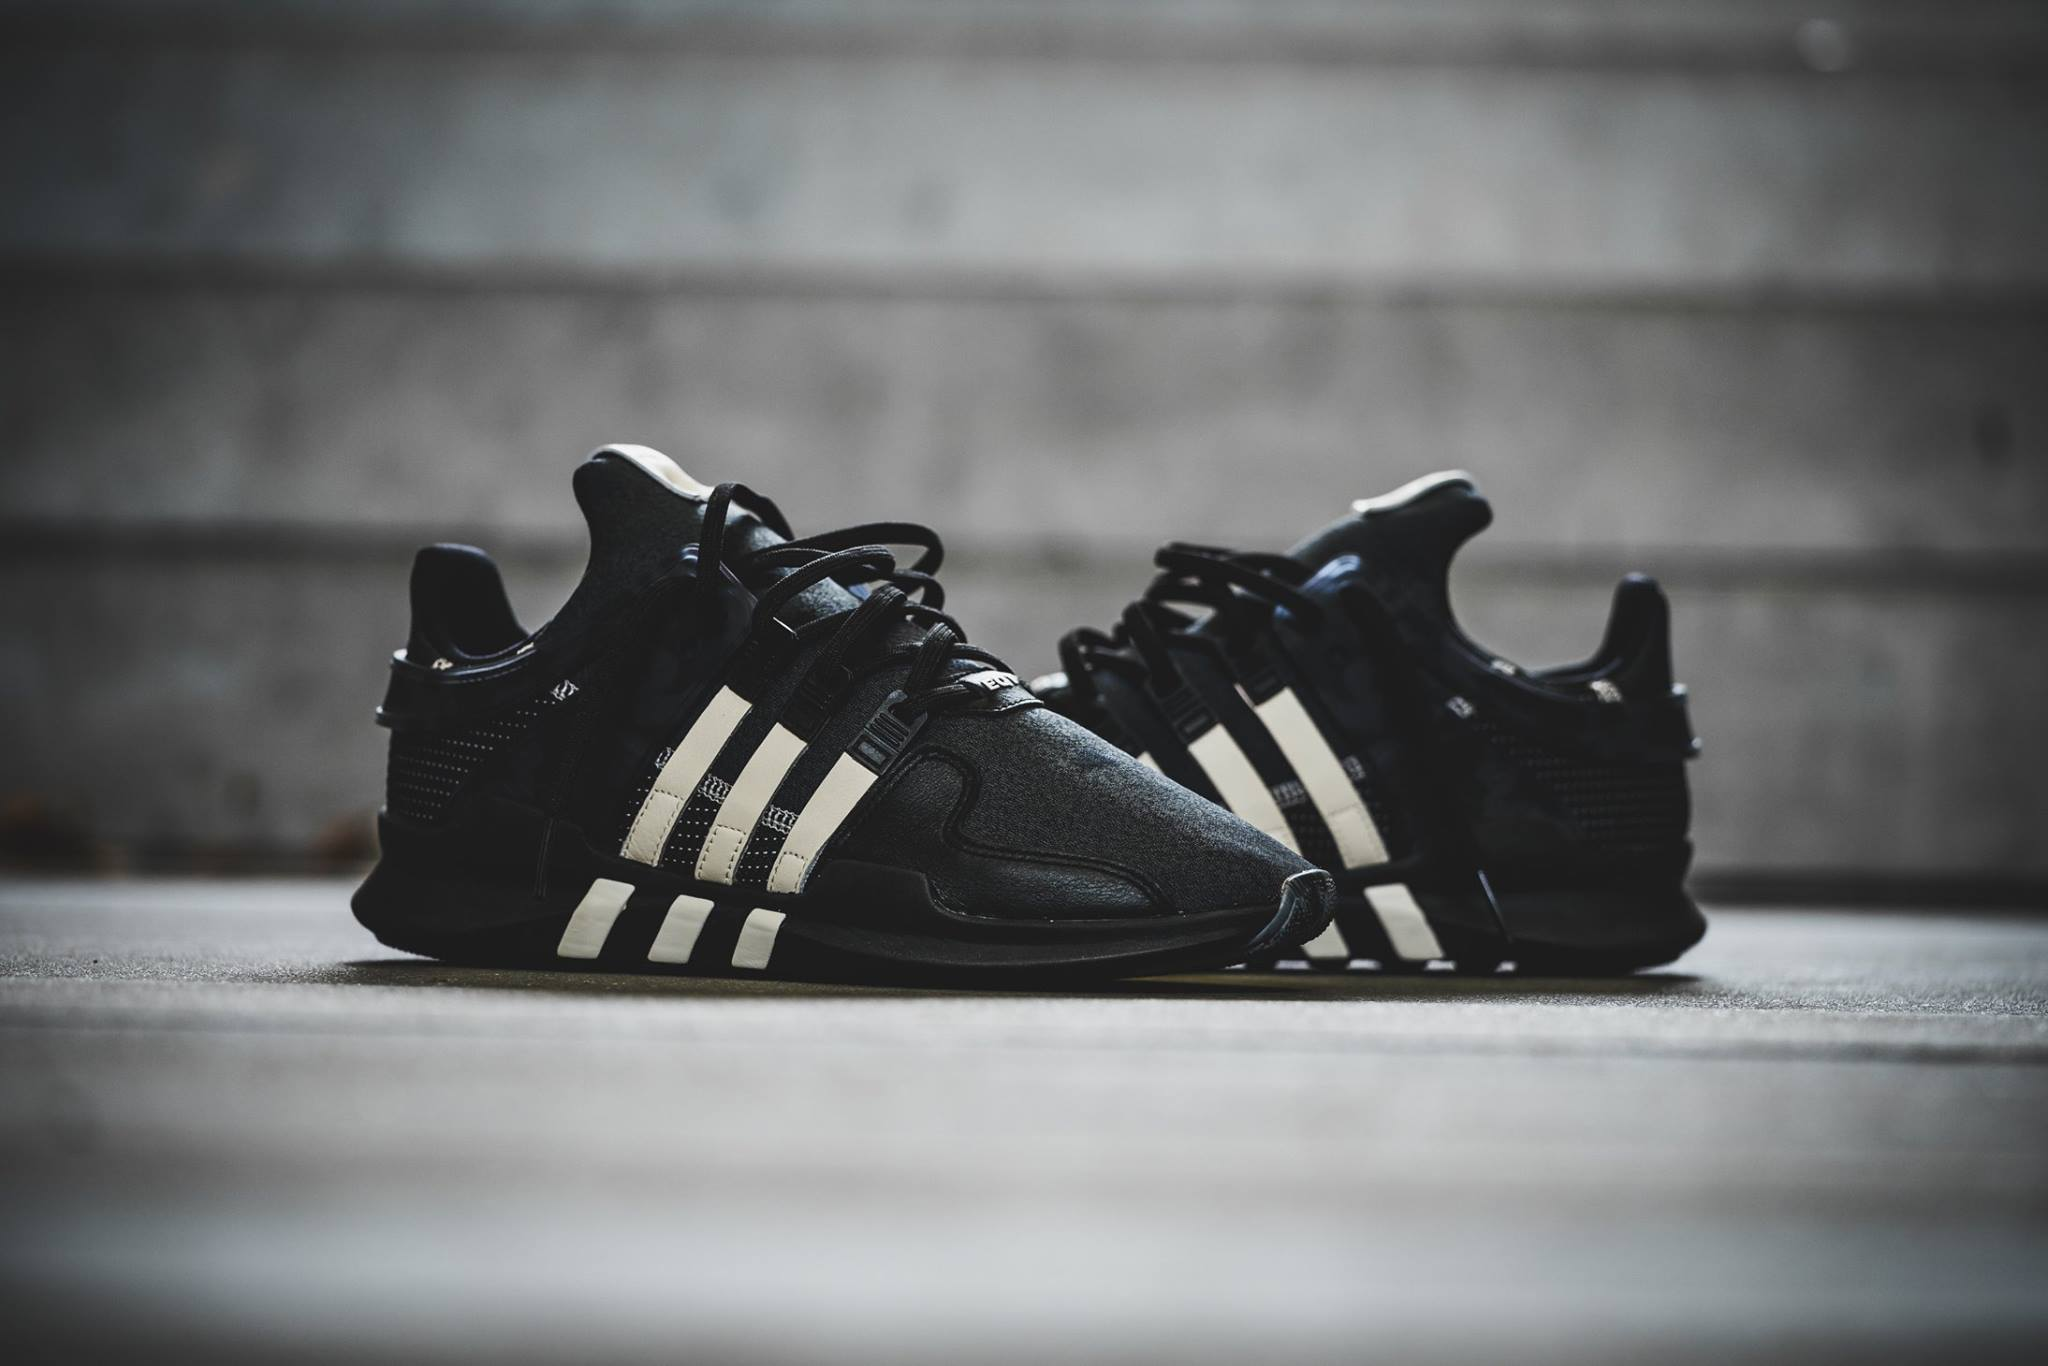 845dab6a5ccc UNDEFEATED x Adidas Consortium EQT Support ADV Release Links